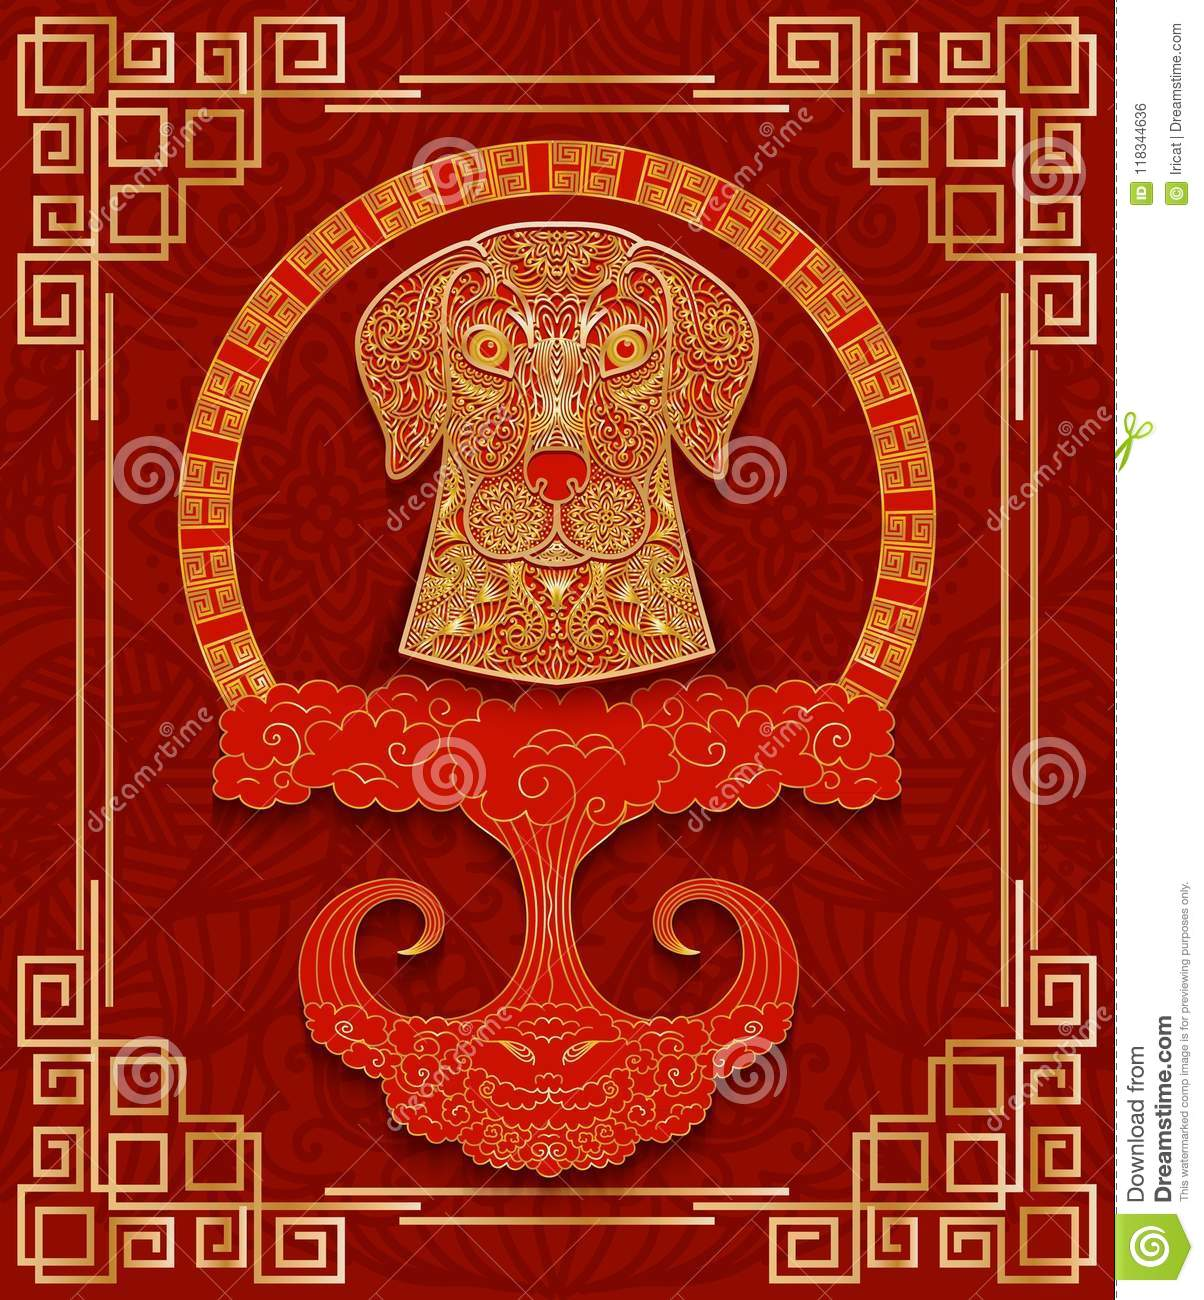 dog is a emblem or sign of the 2018 chinese new year design for envelopes